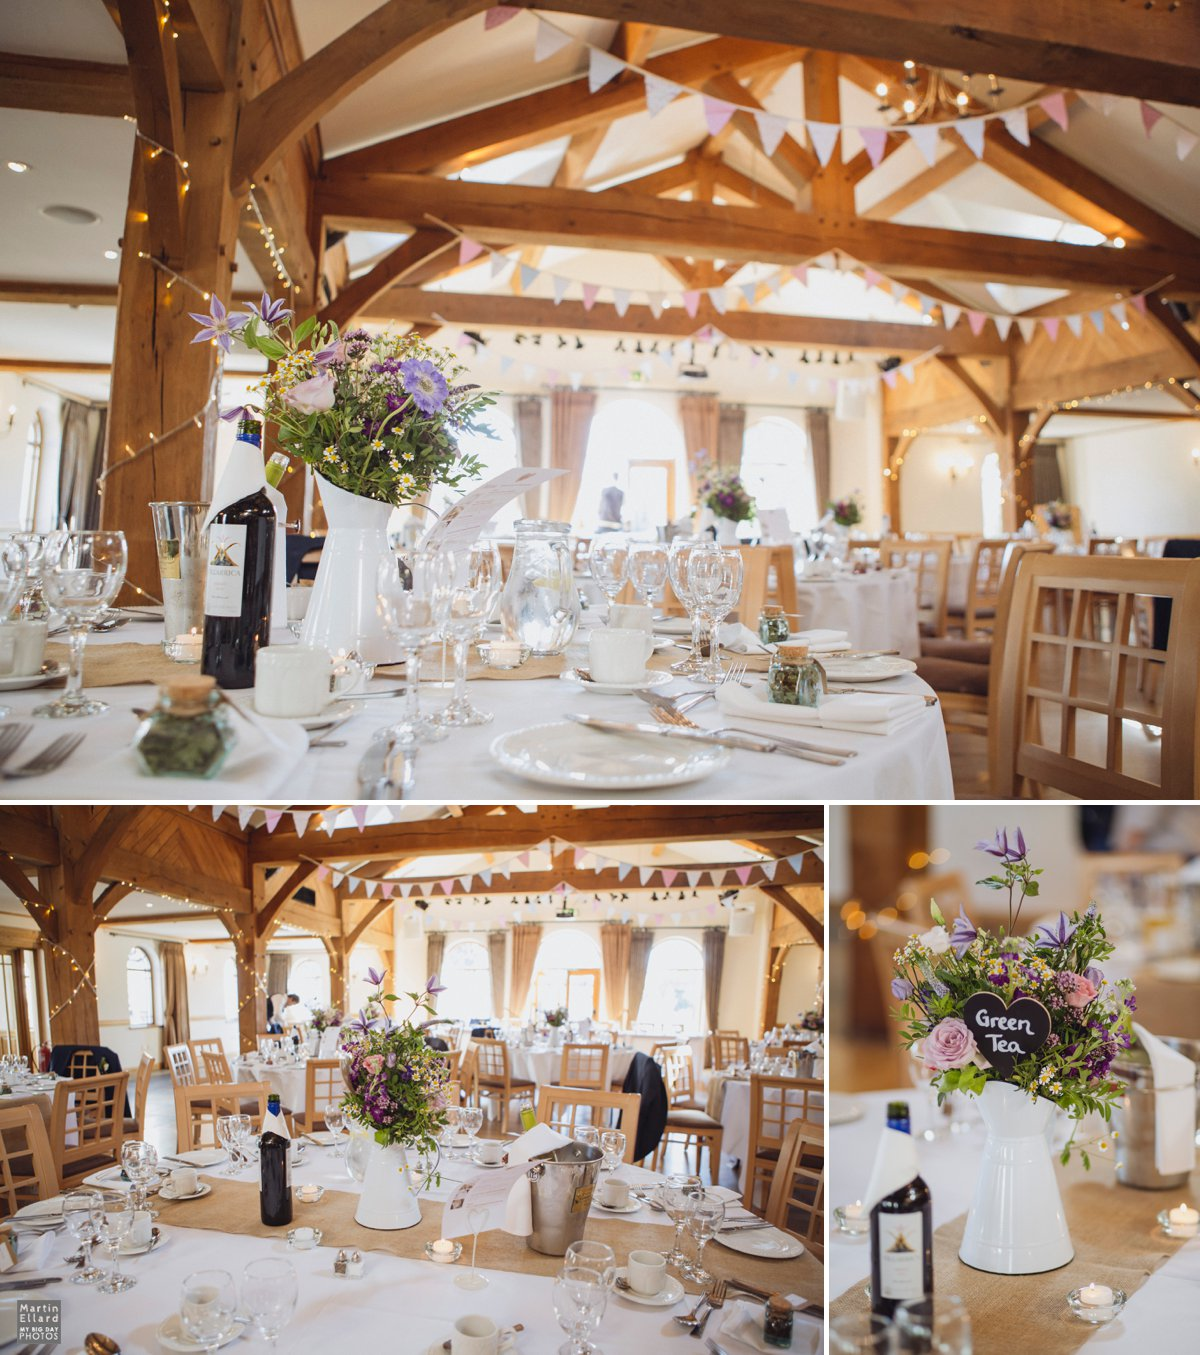 The King Arthur Hotel rustic wedding style